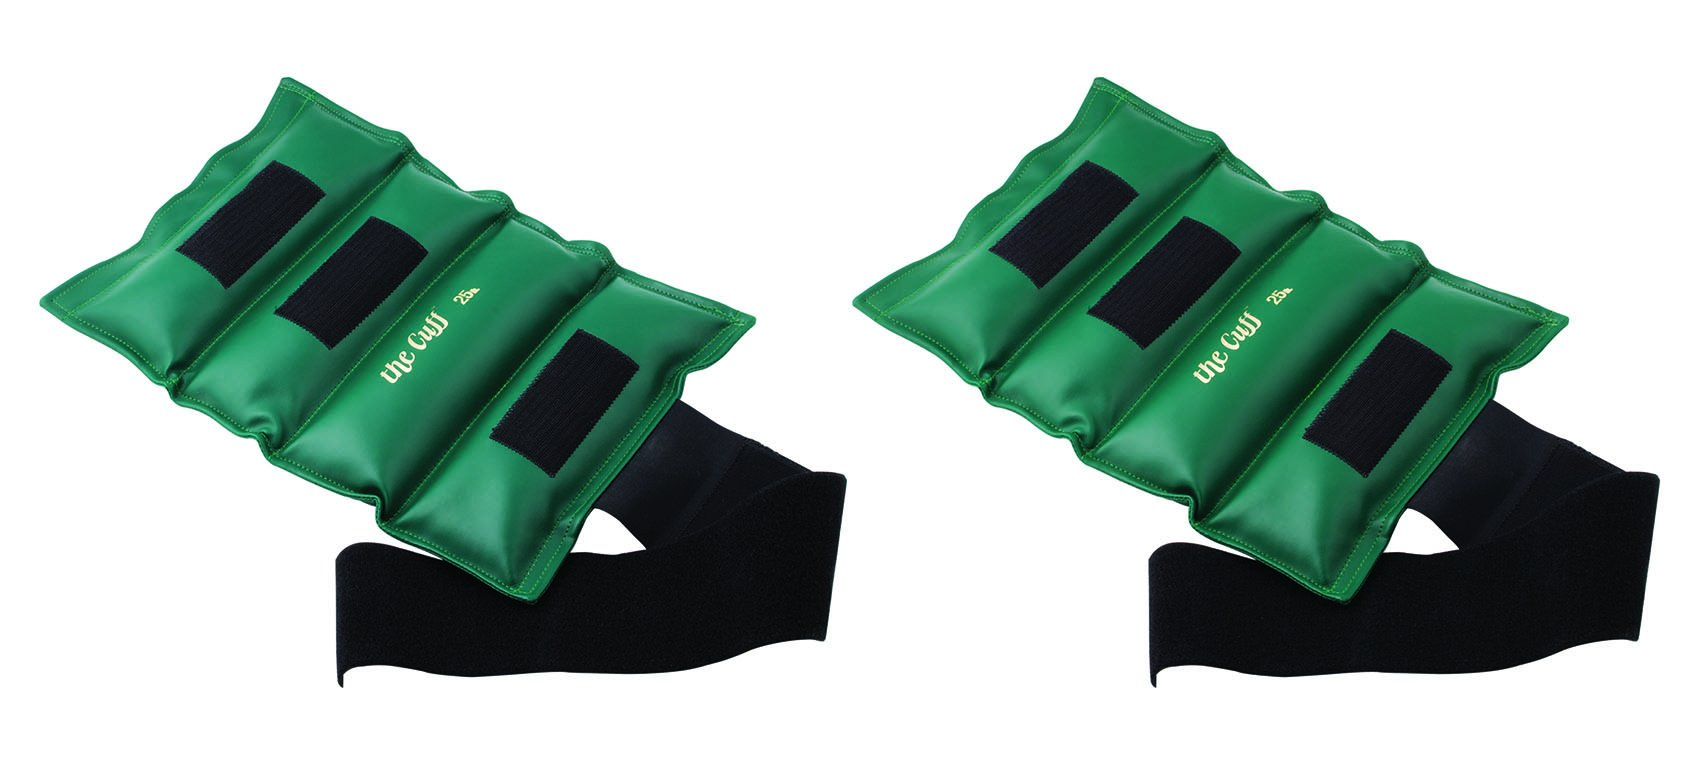 The Cuff Original Ankle and Wrist Weight - 25 pound, Green - Set of 2